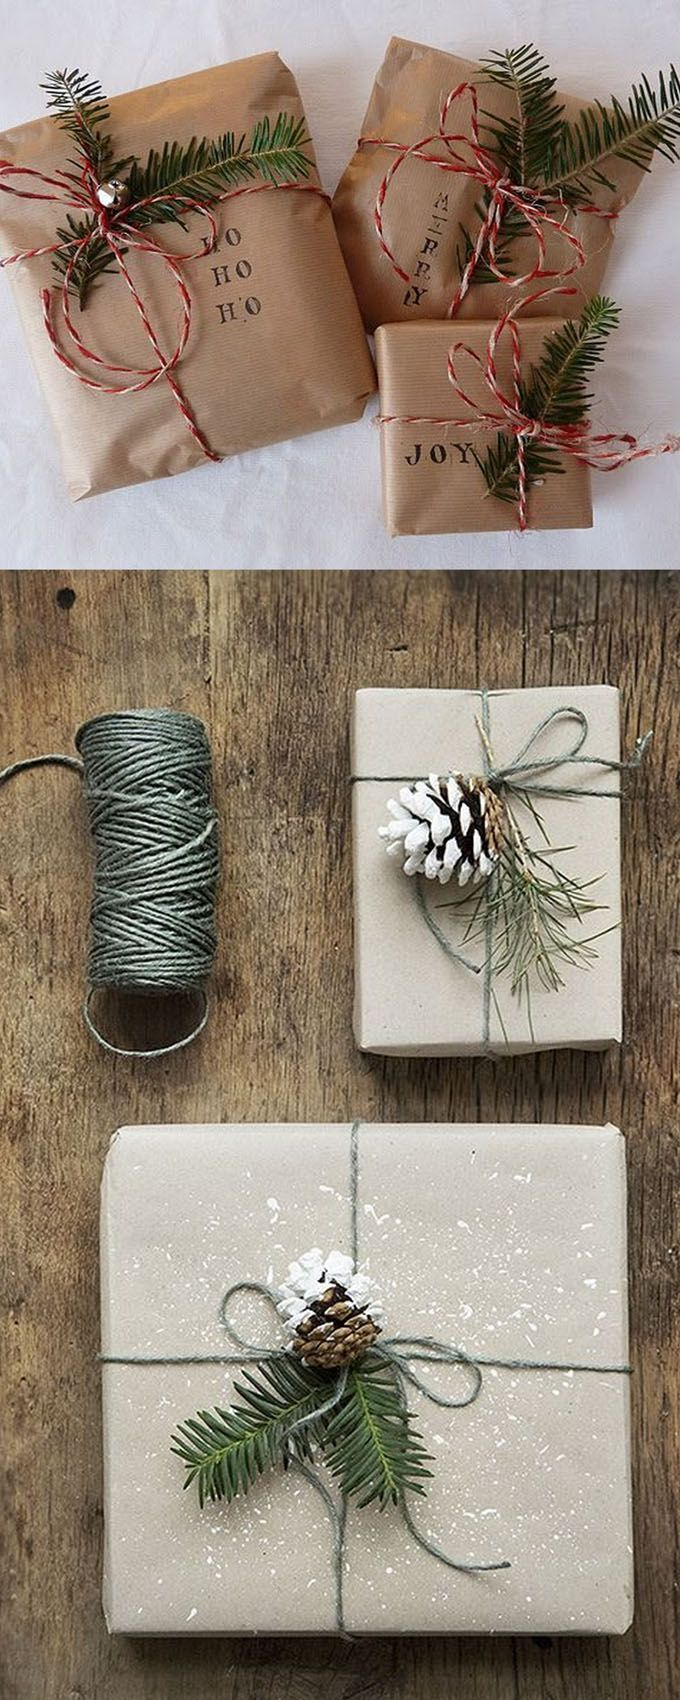 Try these simple yet elegant wrapping ideas, perfect to make your presents look even better!